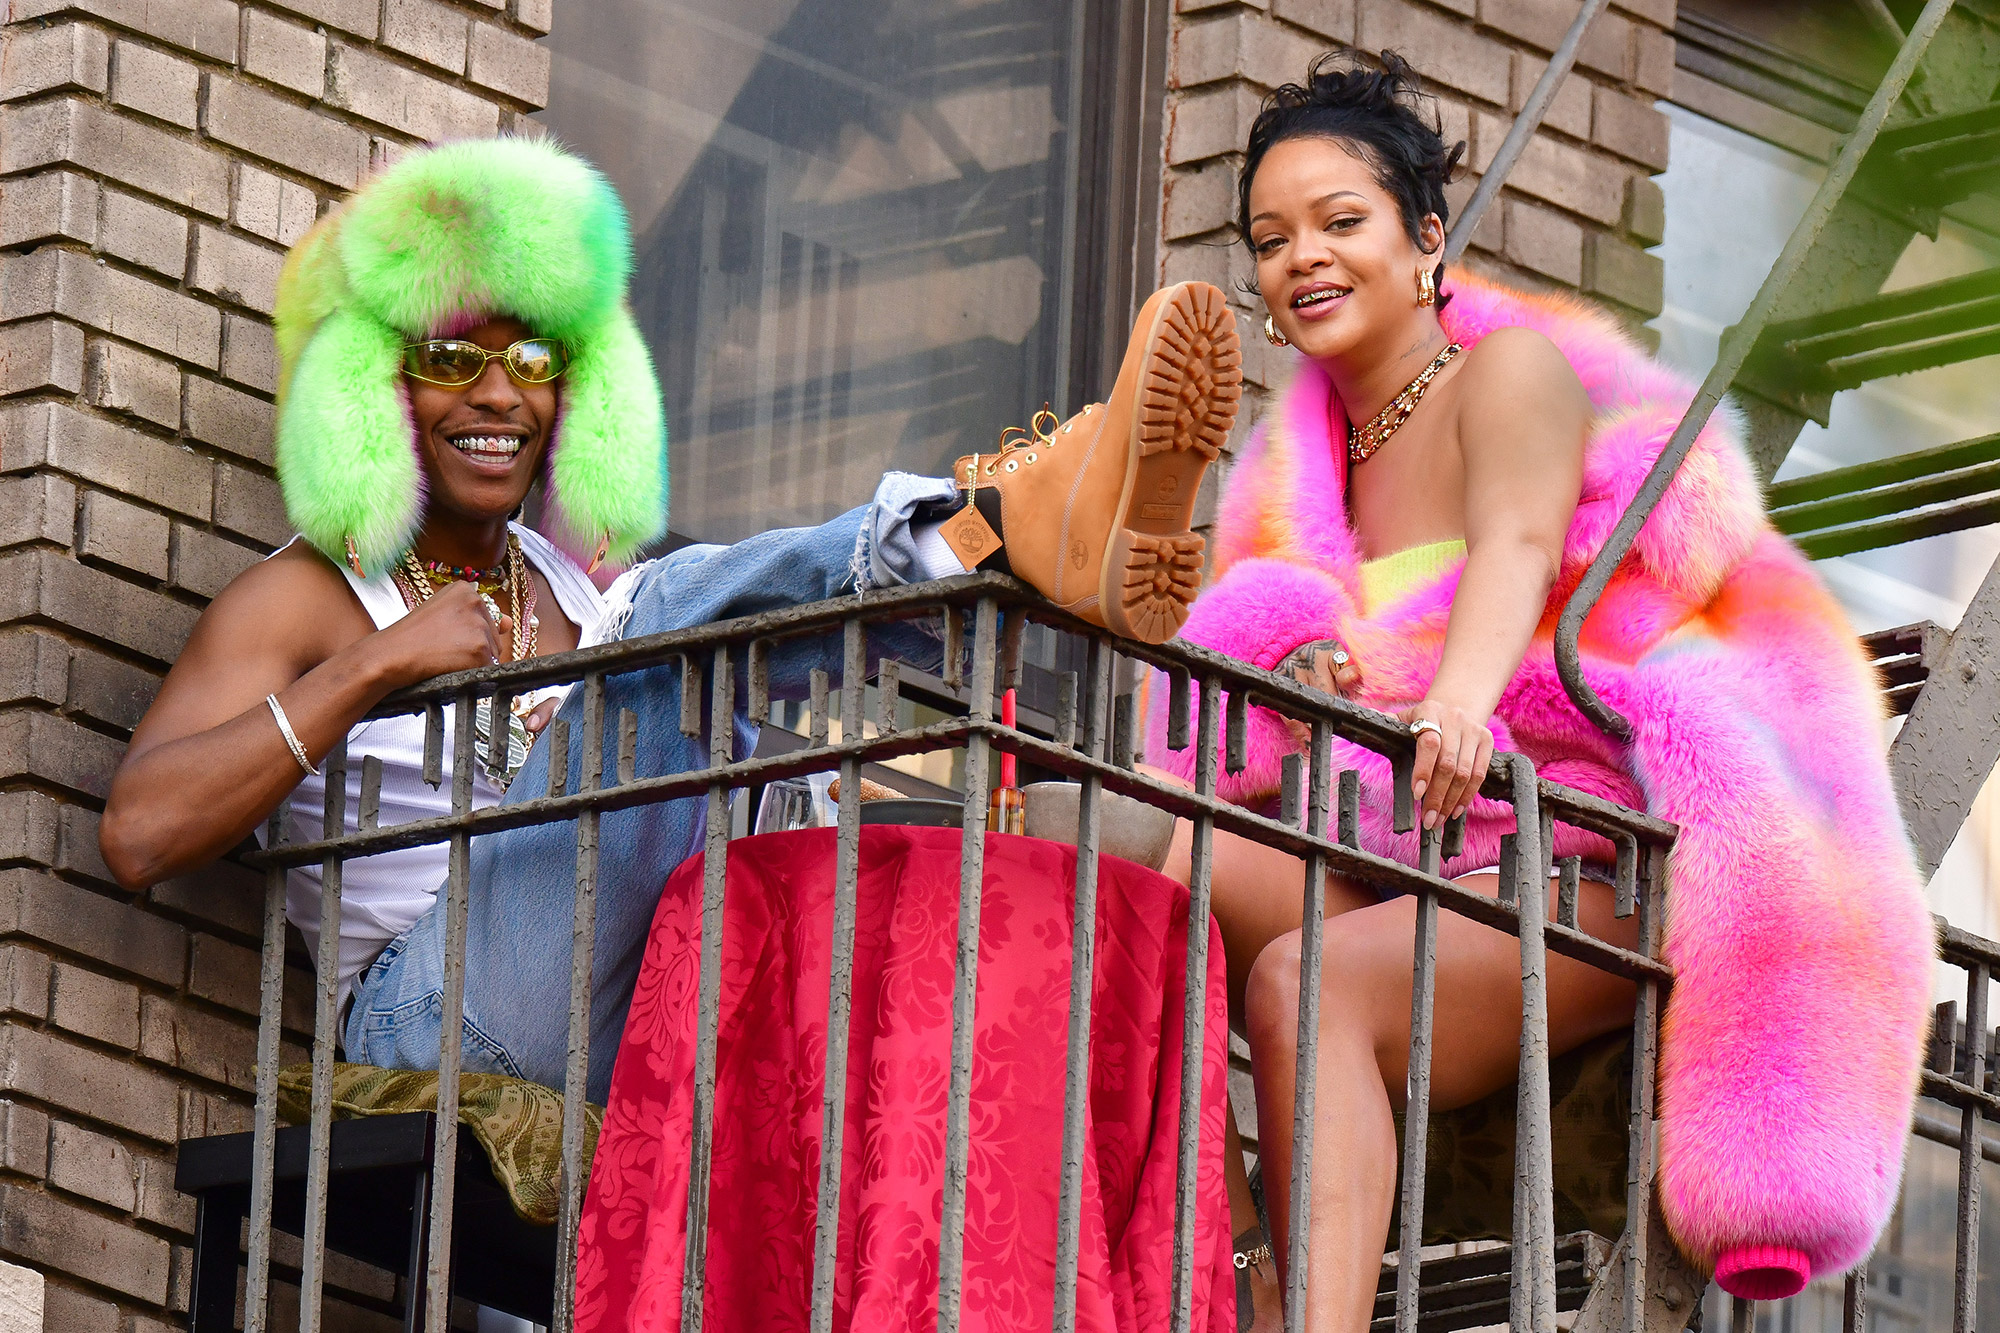 A$AP Rocky and Rihanna seen on the set of their music video in the Bronx on July 11, 2021 in New York City